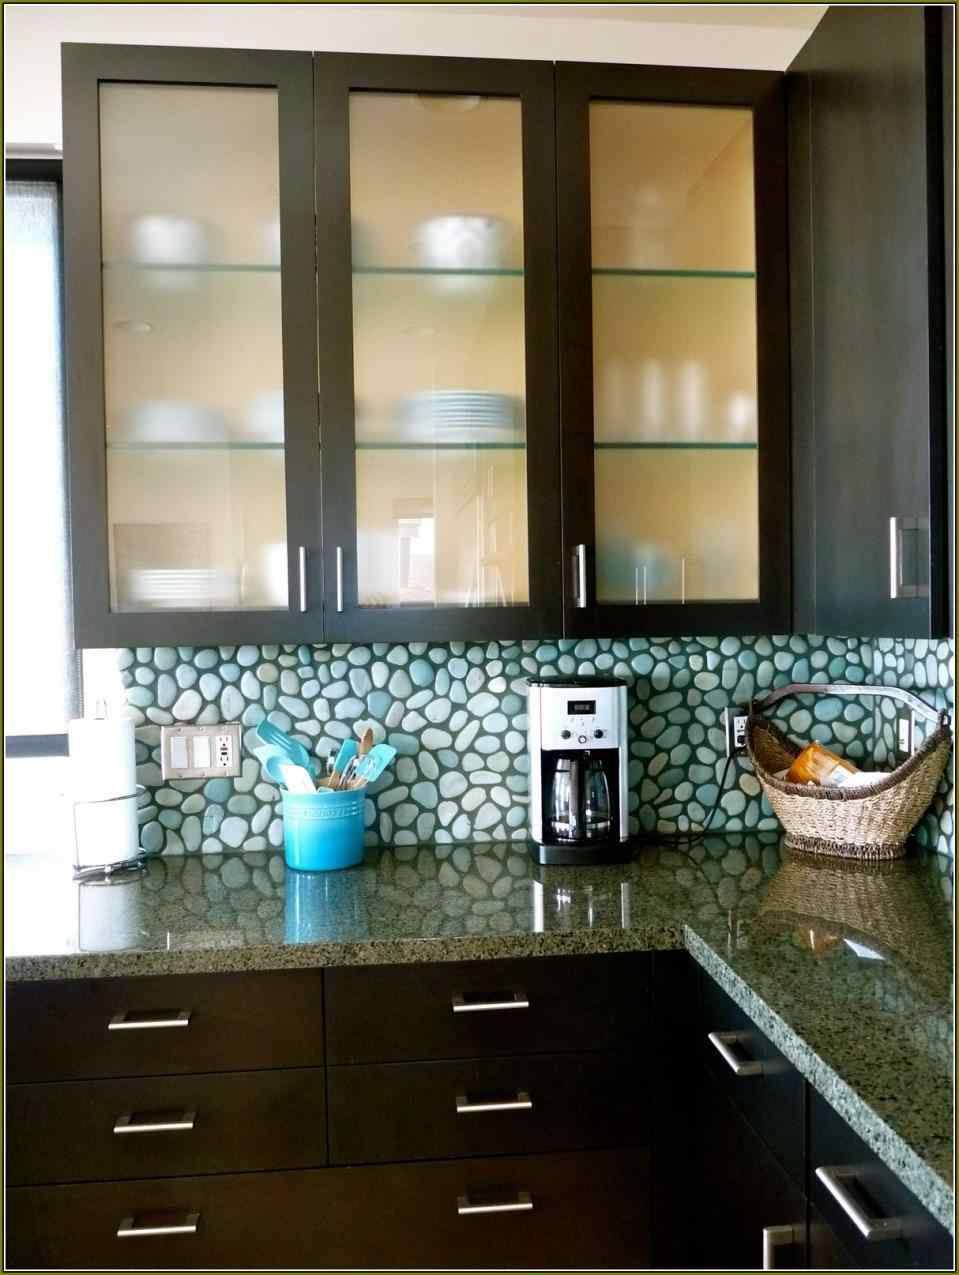 Pin by upetrea on bath remodel pinterest kitchen cabinet doors